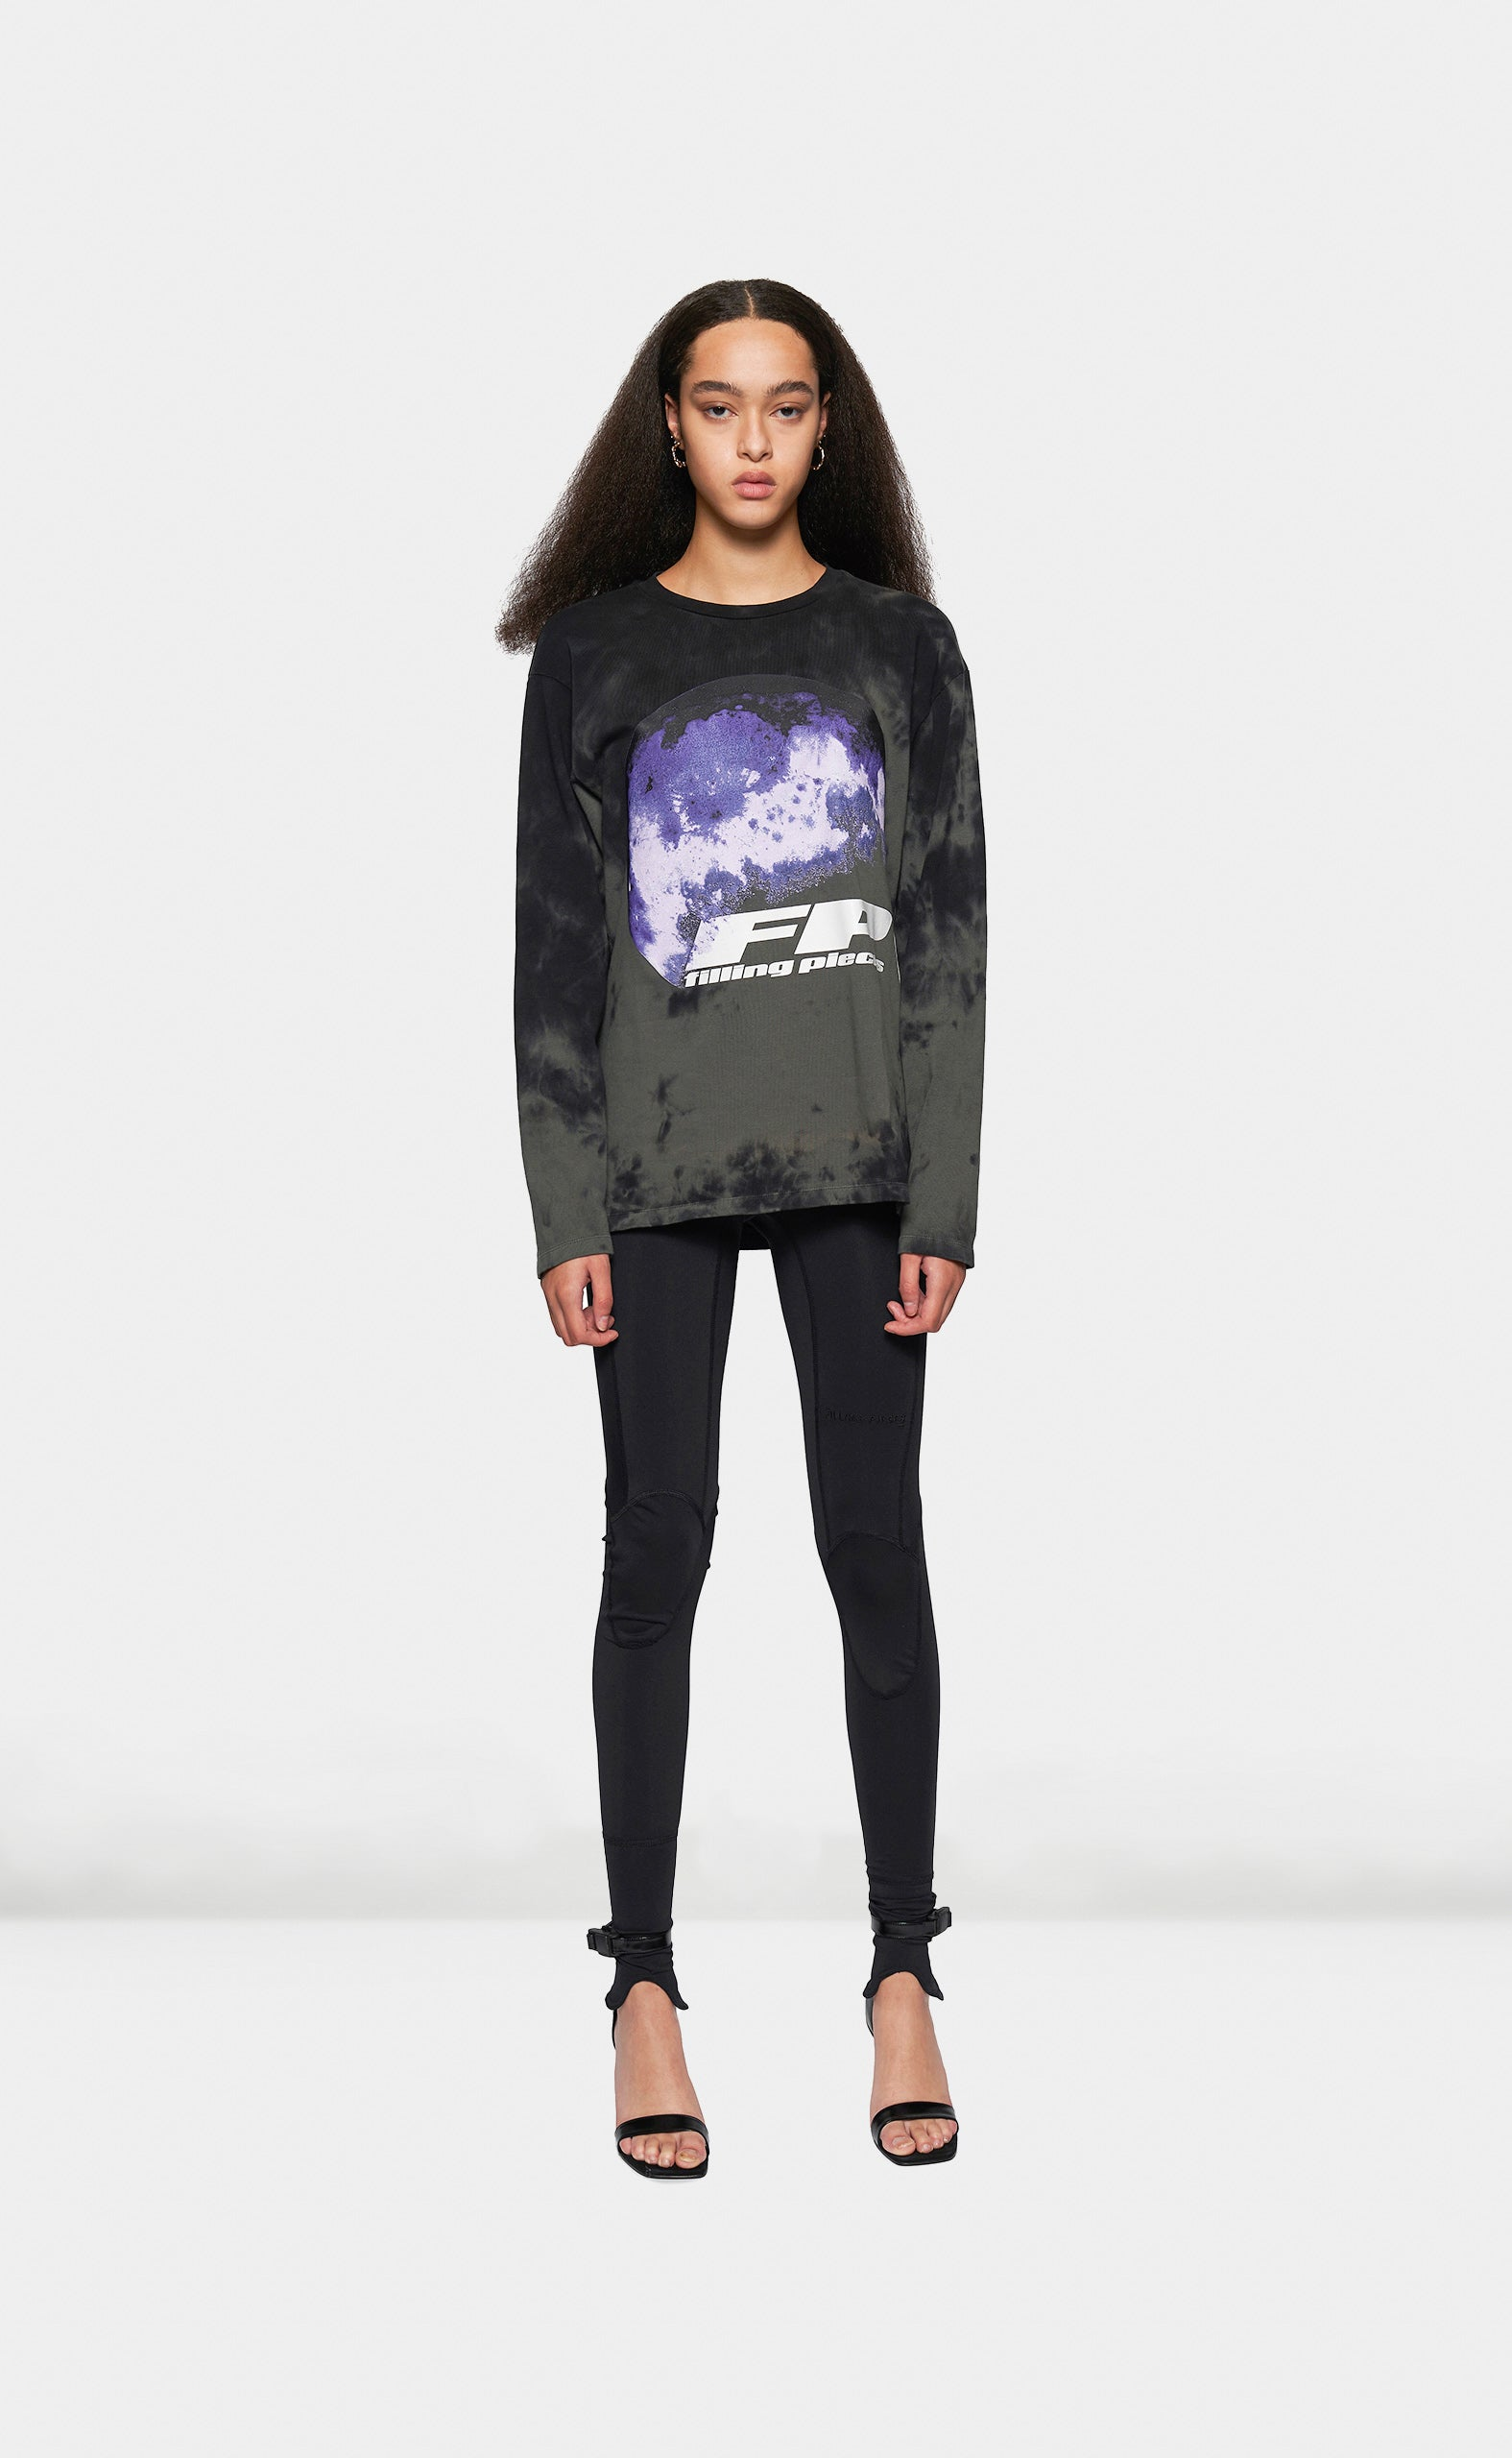 Graphic Longsleeve FP World Black - women